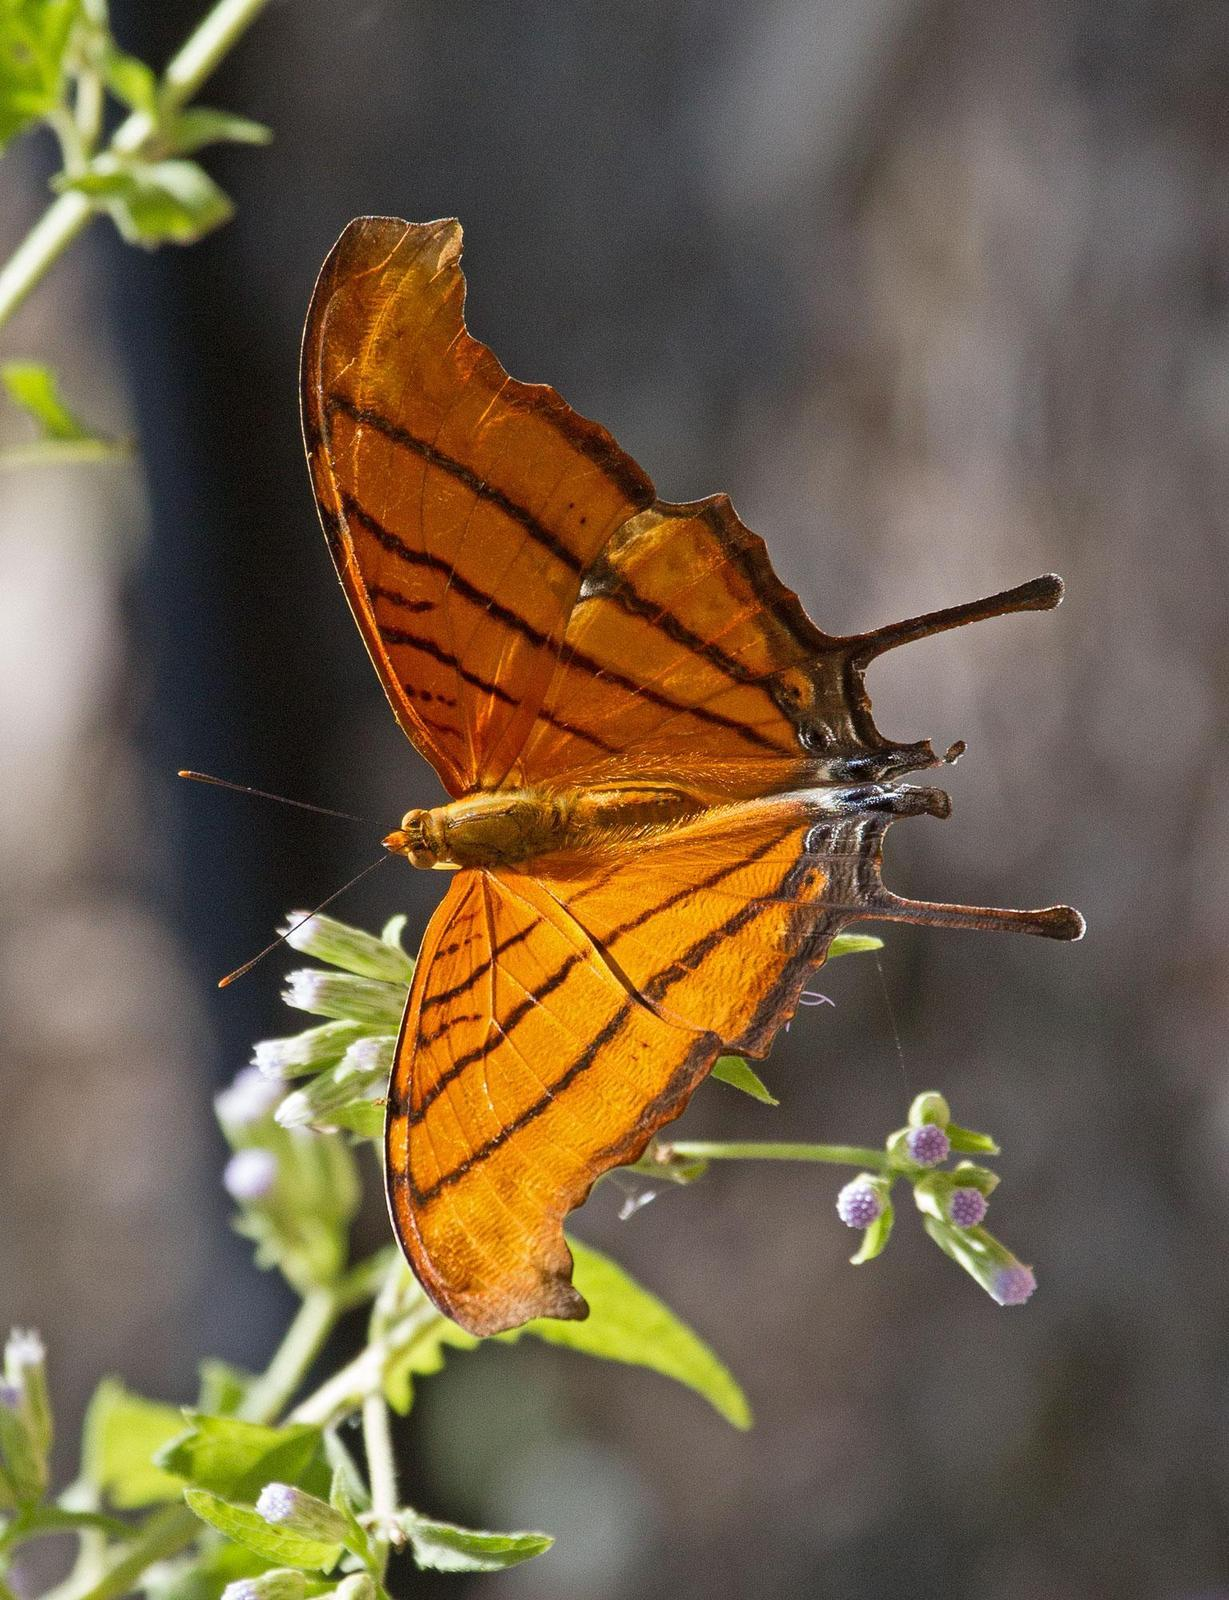 Ruddy Daggerwing Photo by Scott Berglund